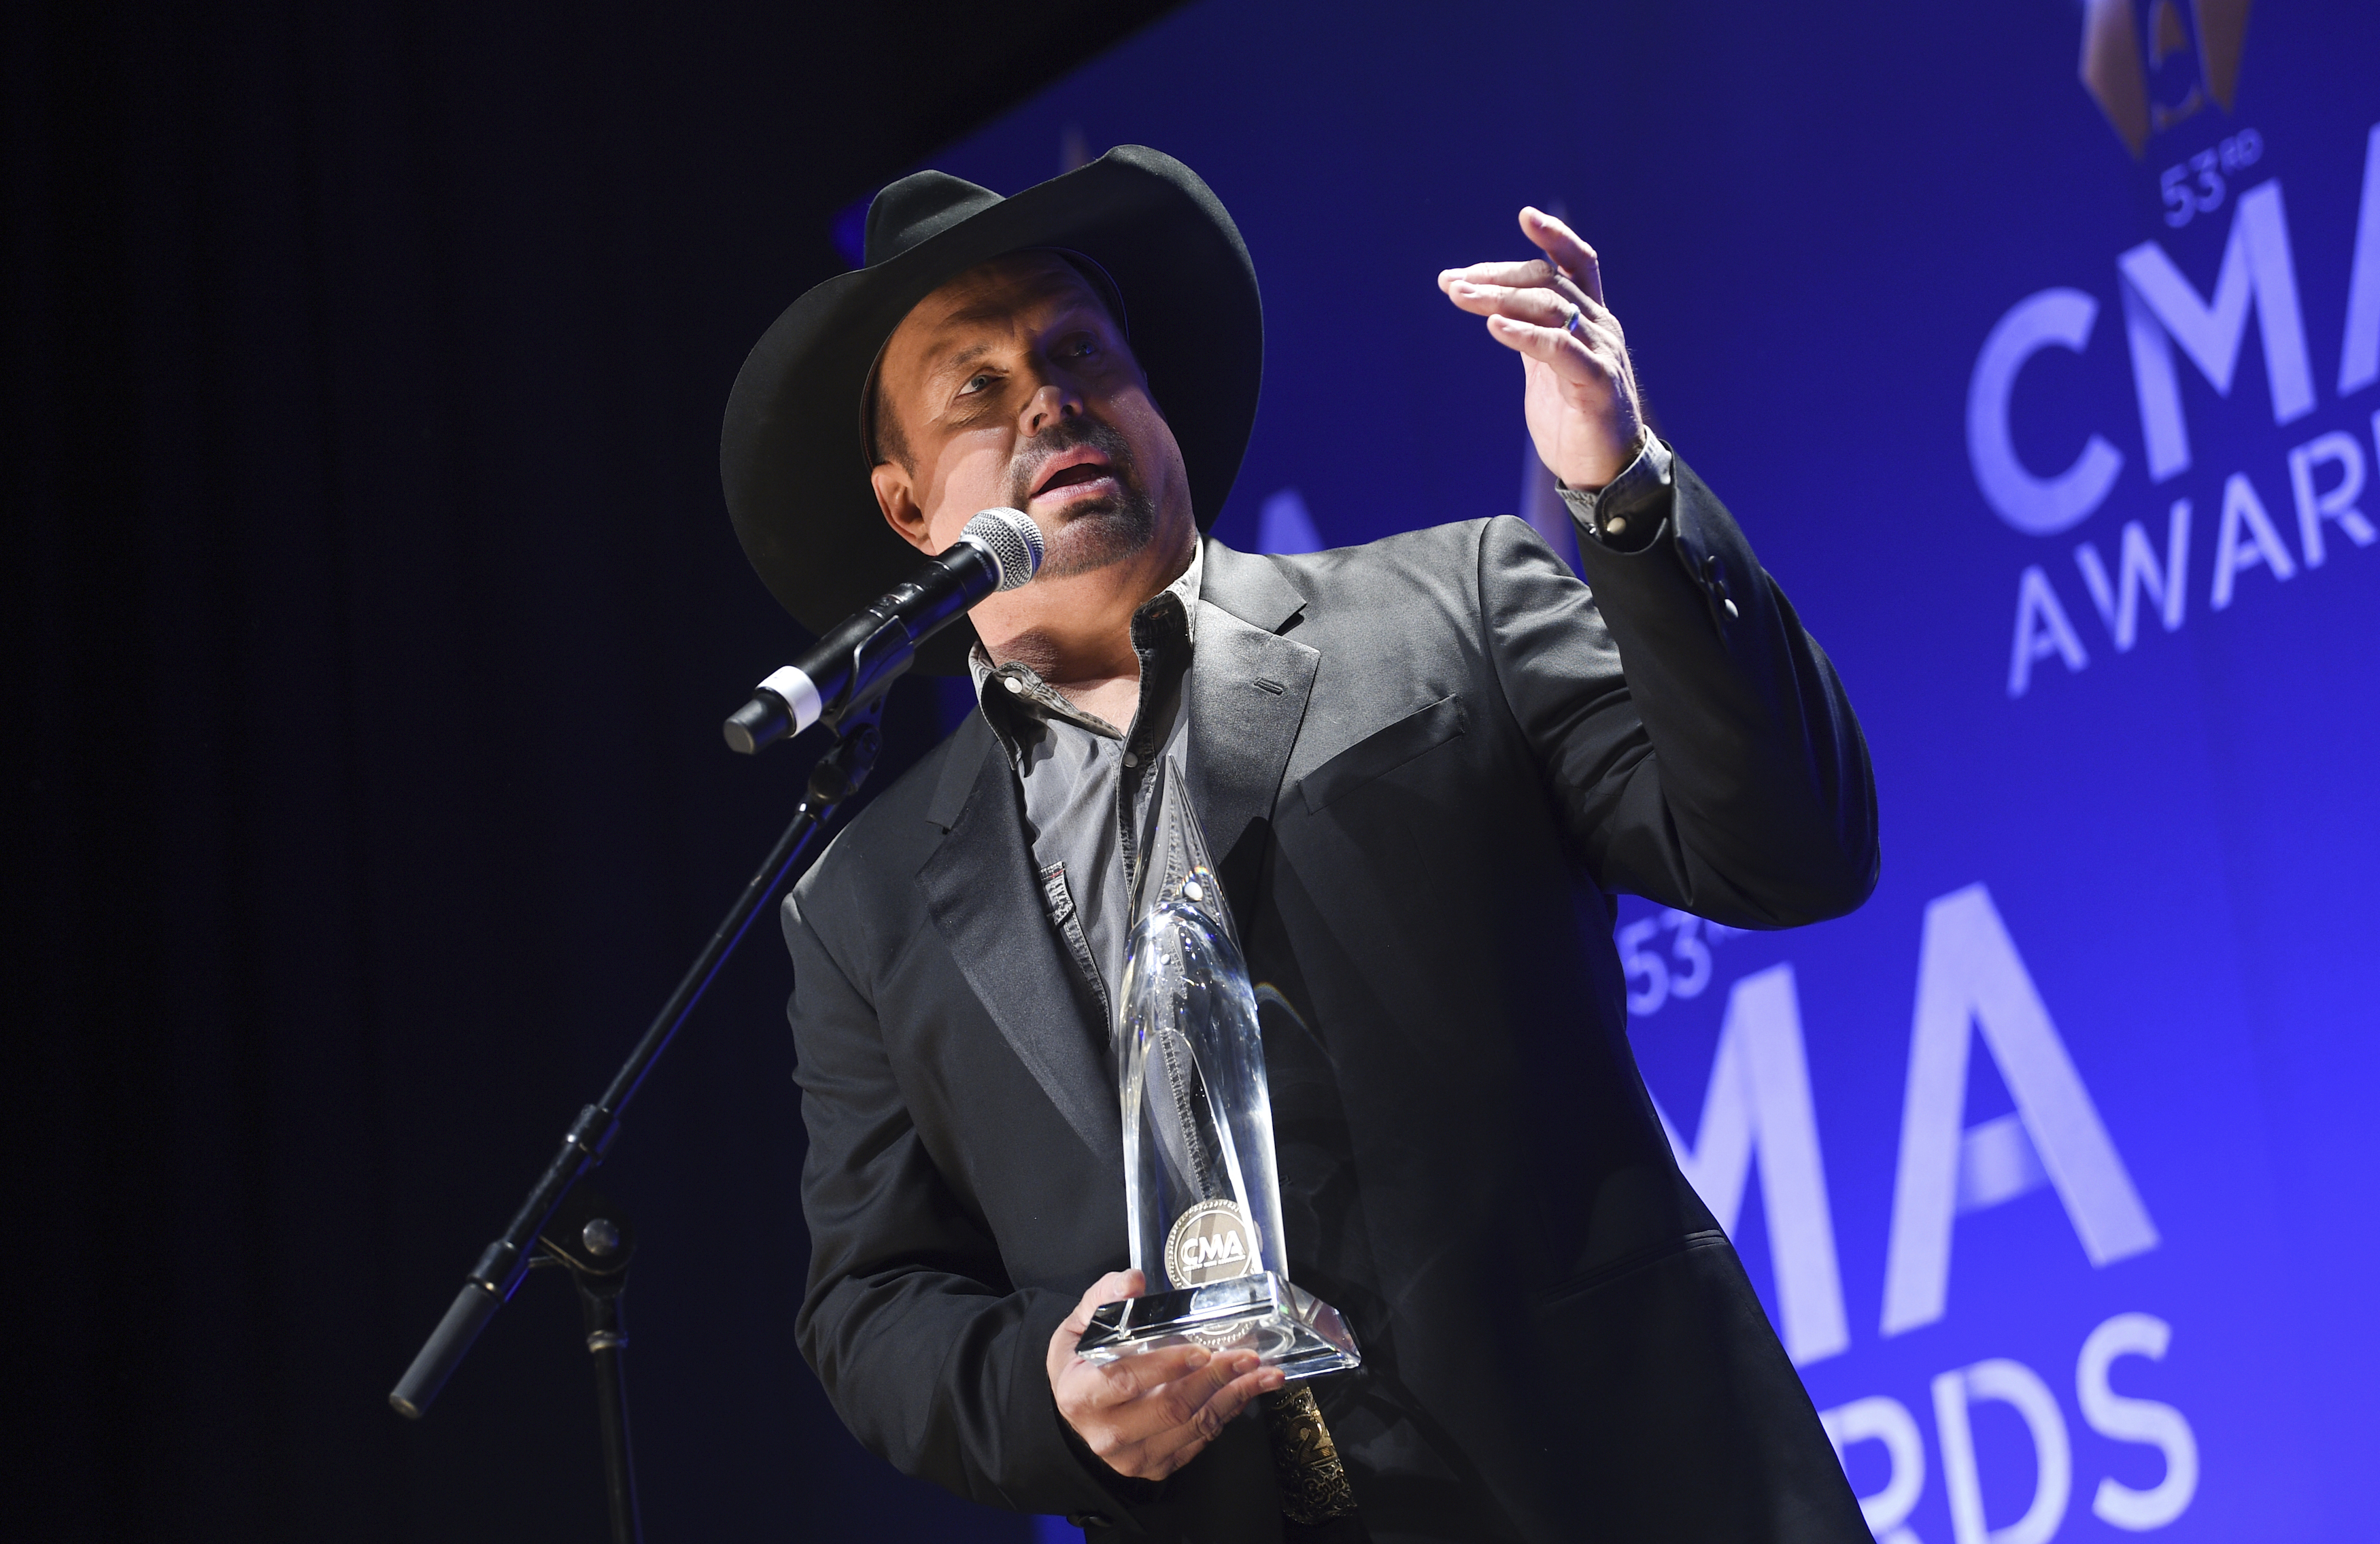 10 things to know today: A win for Garth Brooks - News Maven